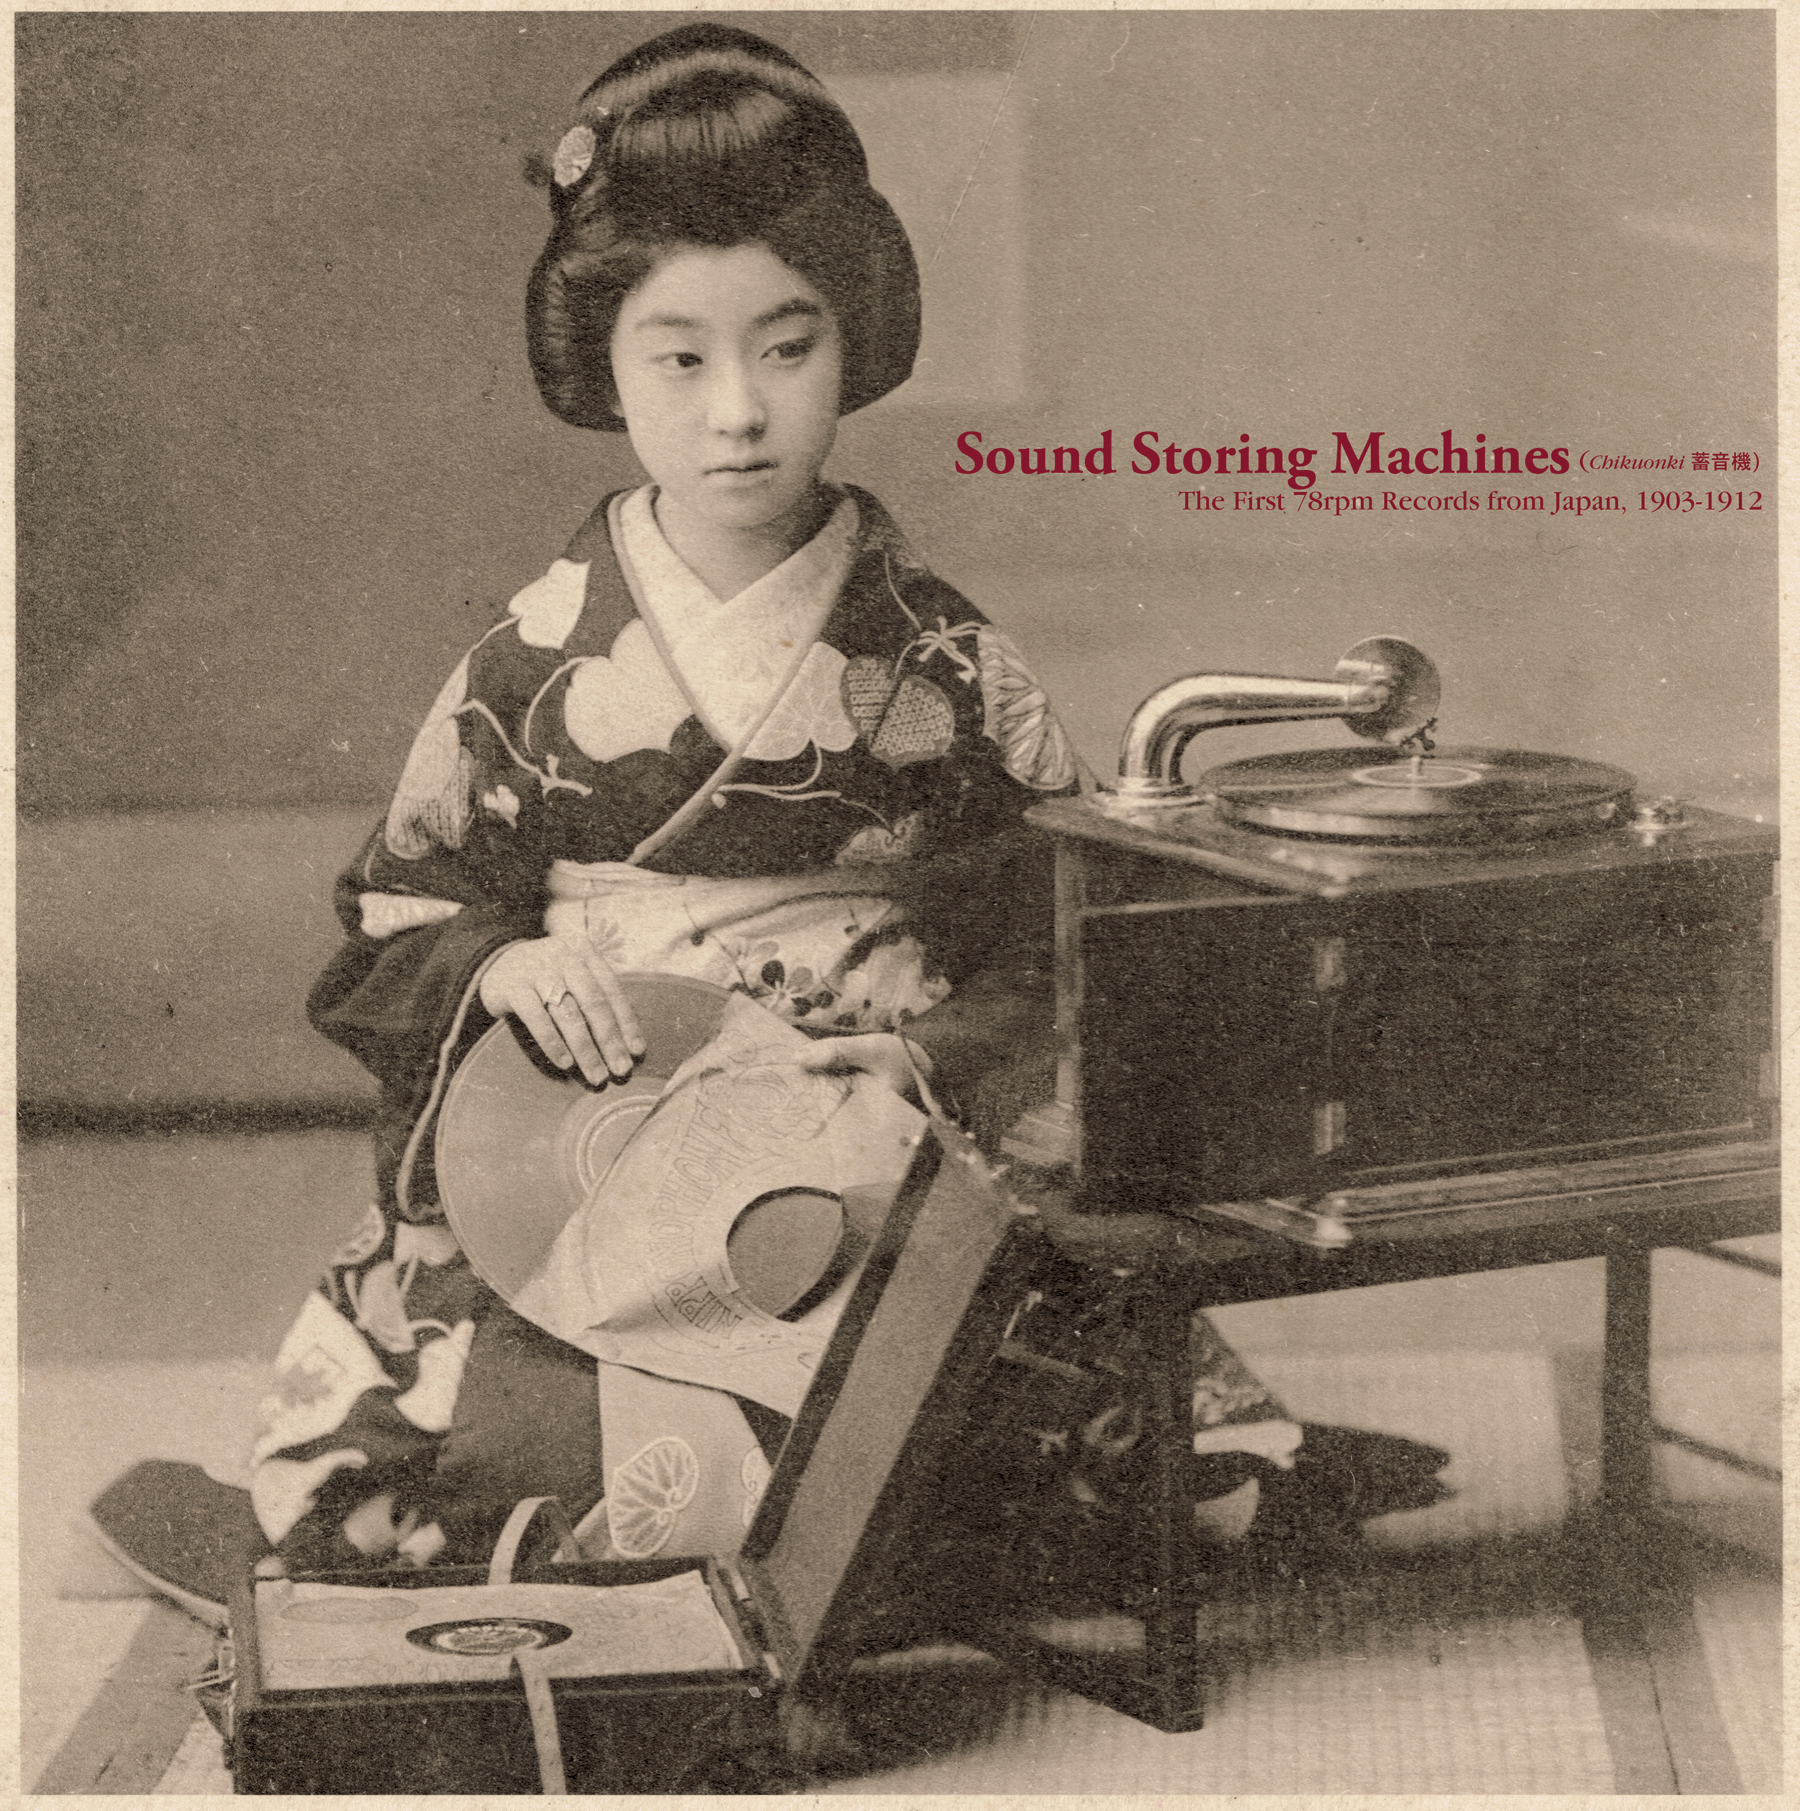 Sound Storing Machines: The First 78rpm Records from Japan, 1903-1912